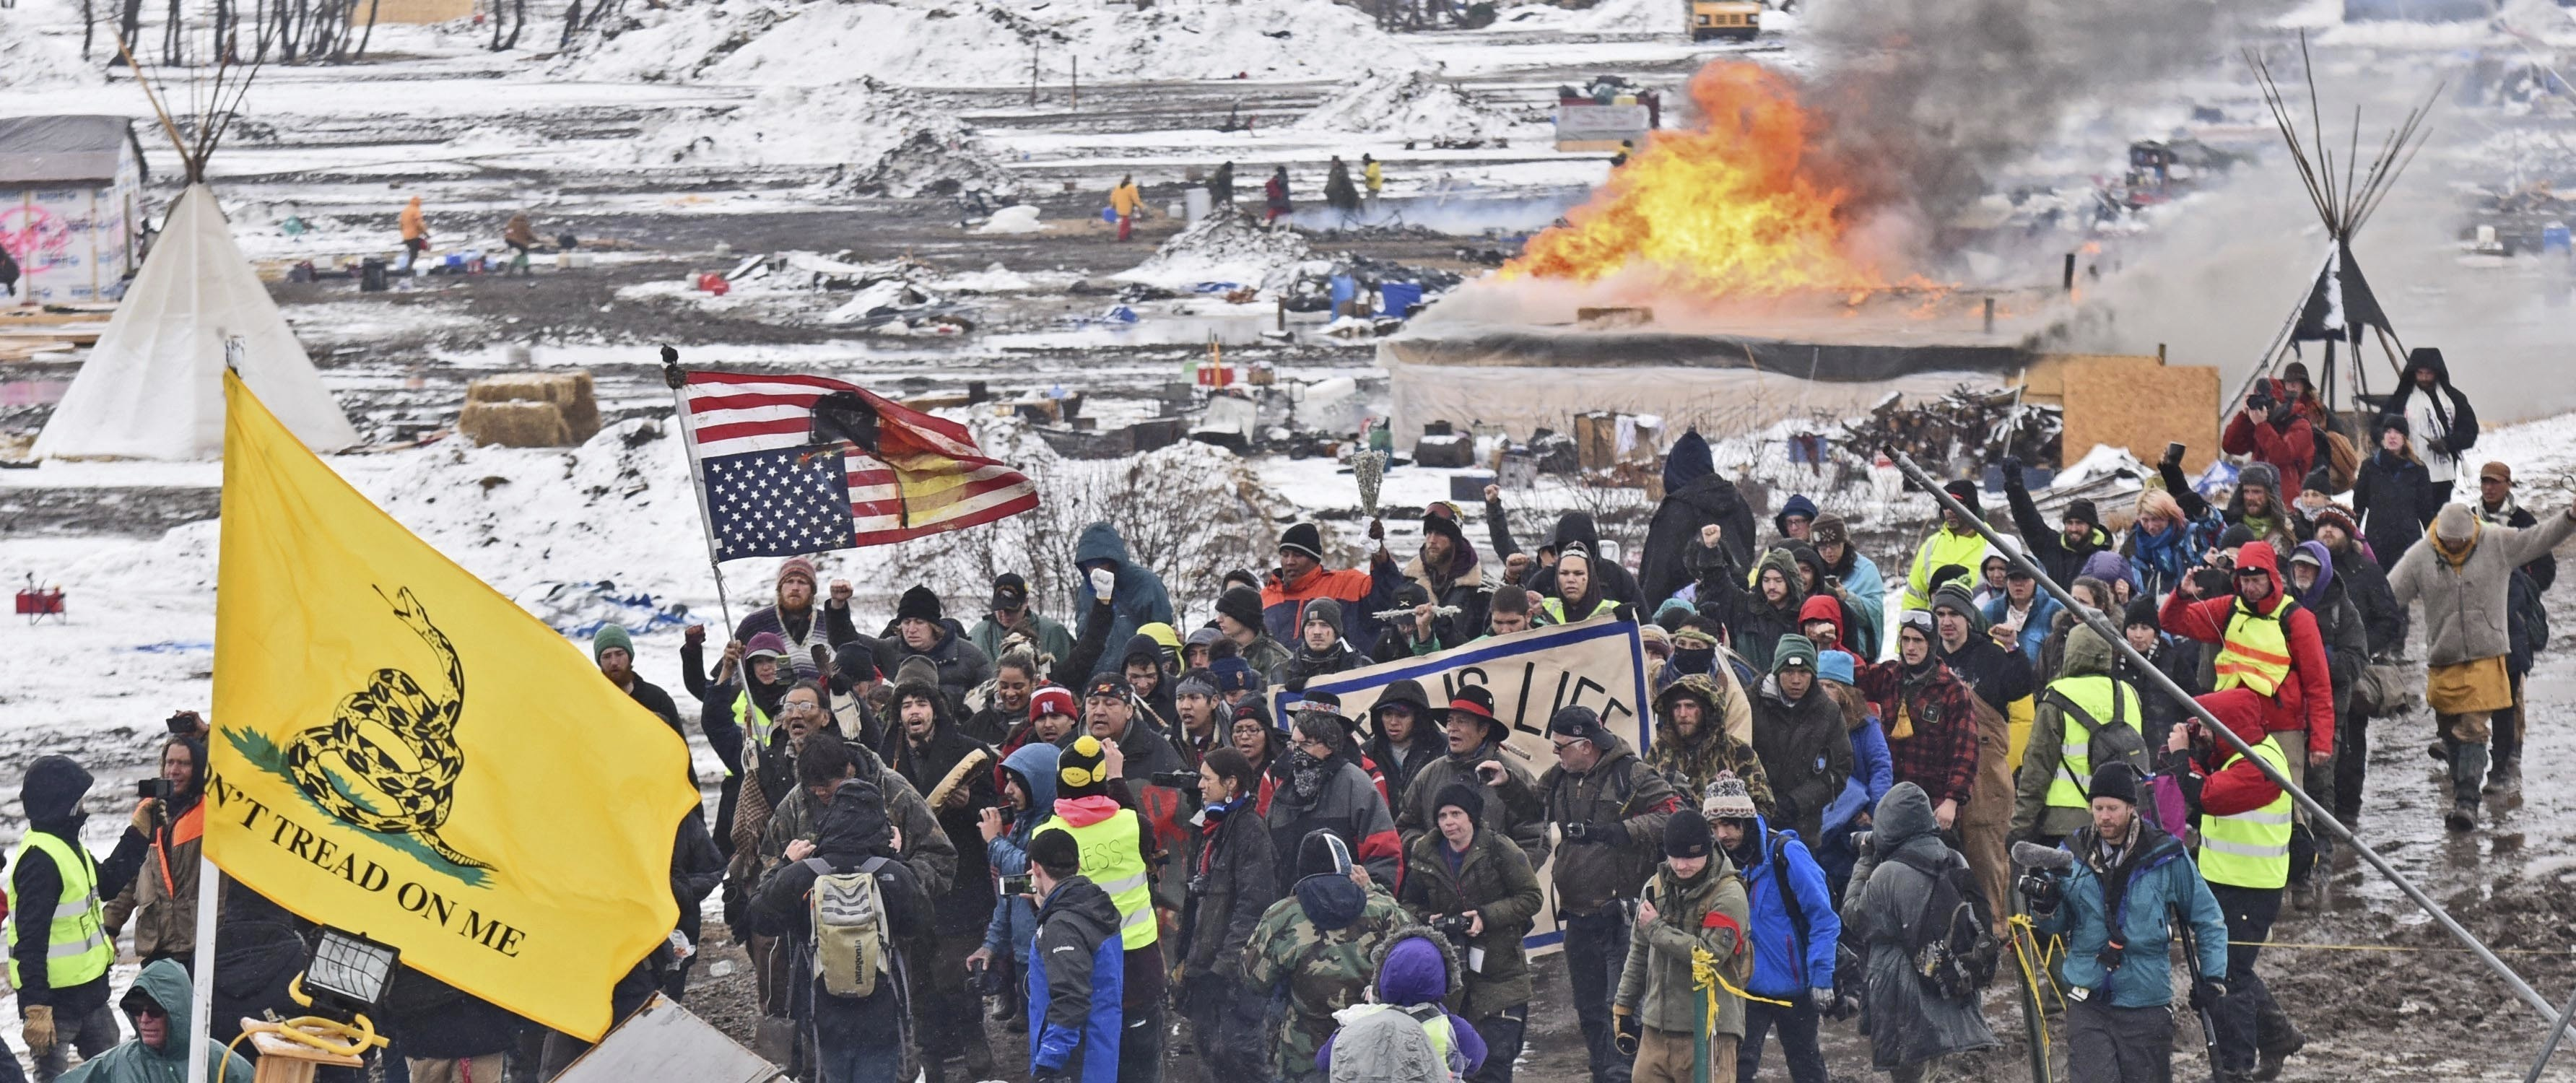 A fire set by protesters burns in the background as opponents of the Dakota Access pipeline leave their main protest camp near Cannon Ball, N.D., on Feb. 22, 2017. (Tom Stromme/The Bismarck Tribune via AP)